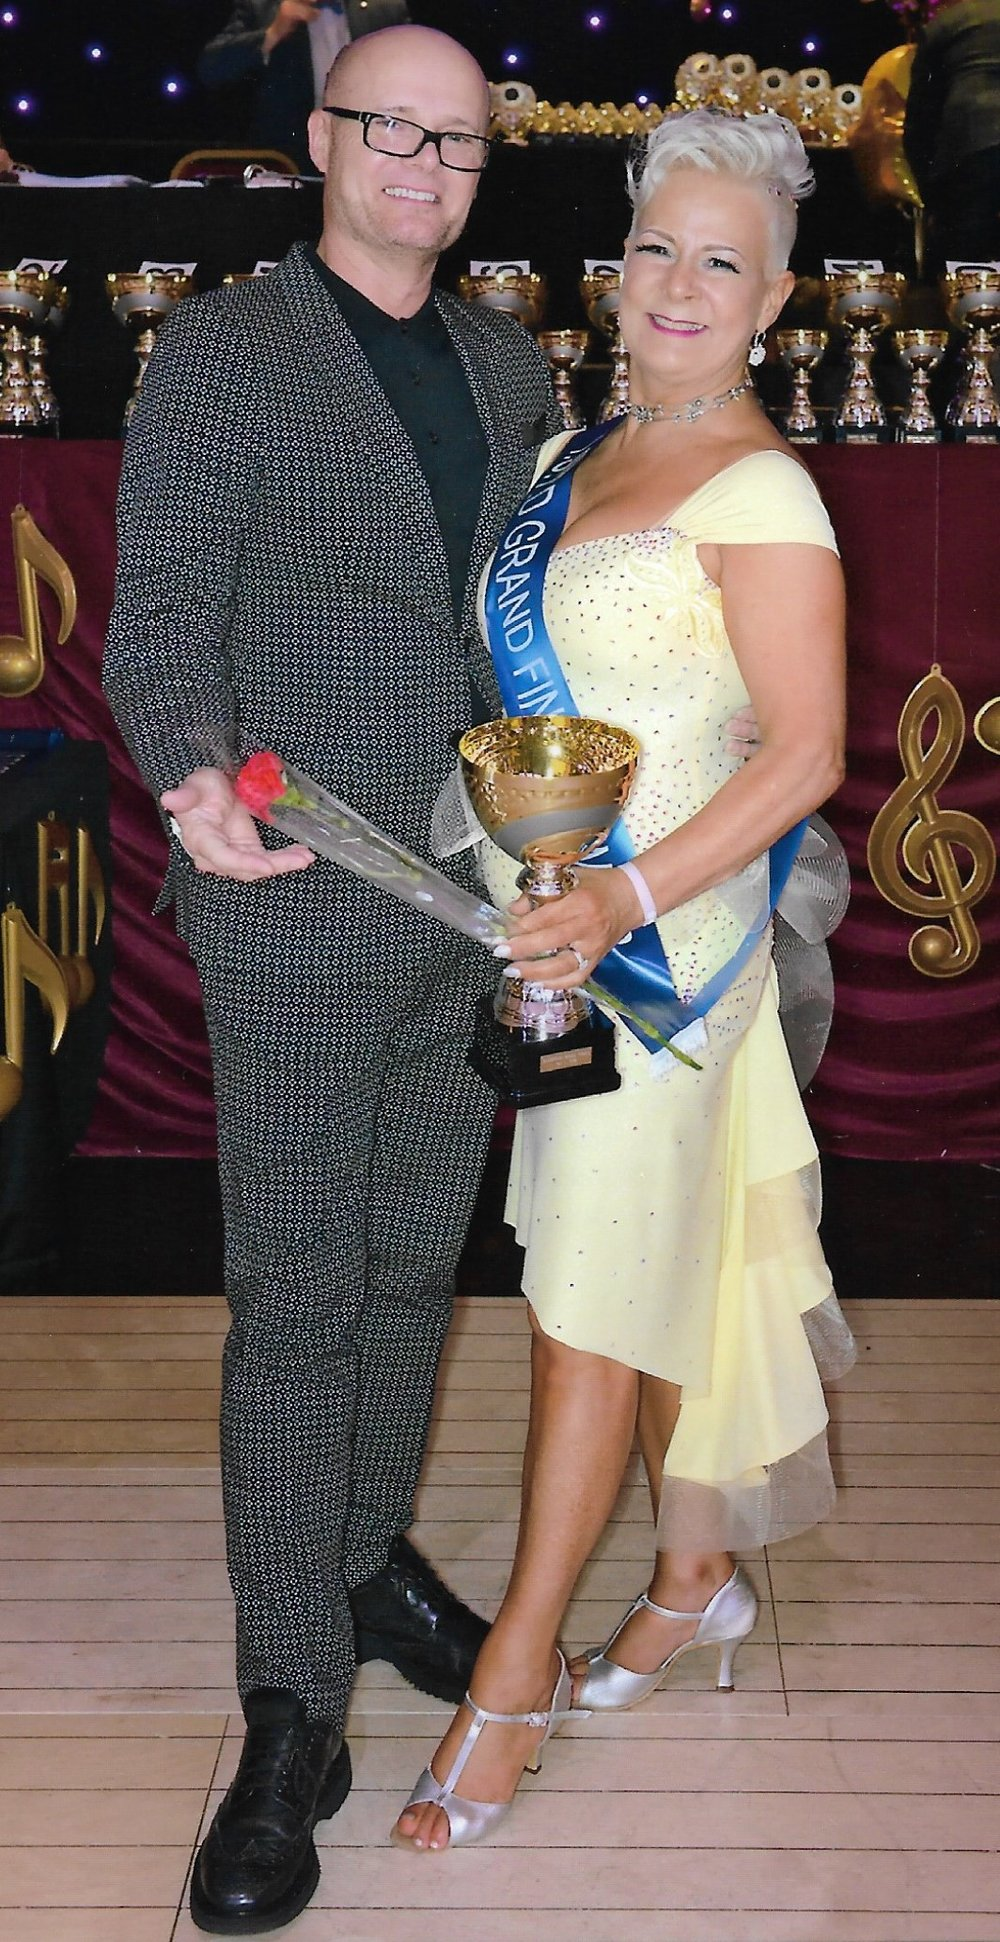 Terri Richmond doing the double!! Winner of Grand Finals in Blackpool WinterGardens 4 years on the trot 2015, 2016, 2017 in Ballroom and now Ballroom and Latin winner 2018. 5 sashes in 4 years! This in addition to being 2018 Pro-Amateur Ballroom over 60s winner at Champions of Tomorrow! Well done Terri Richmond.